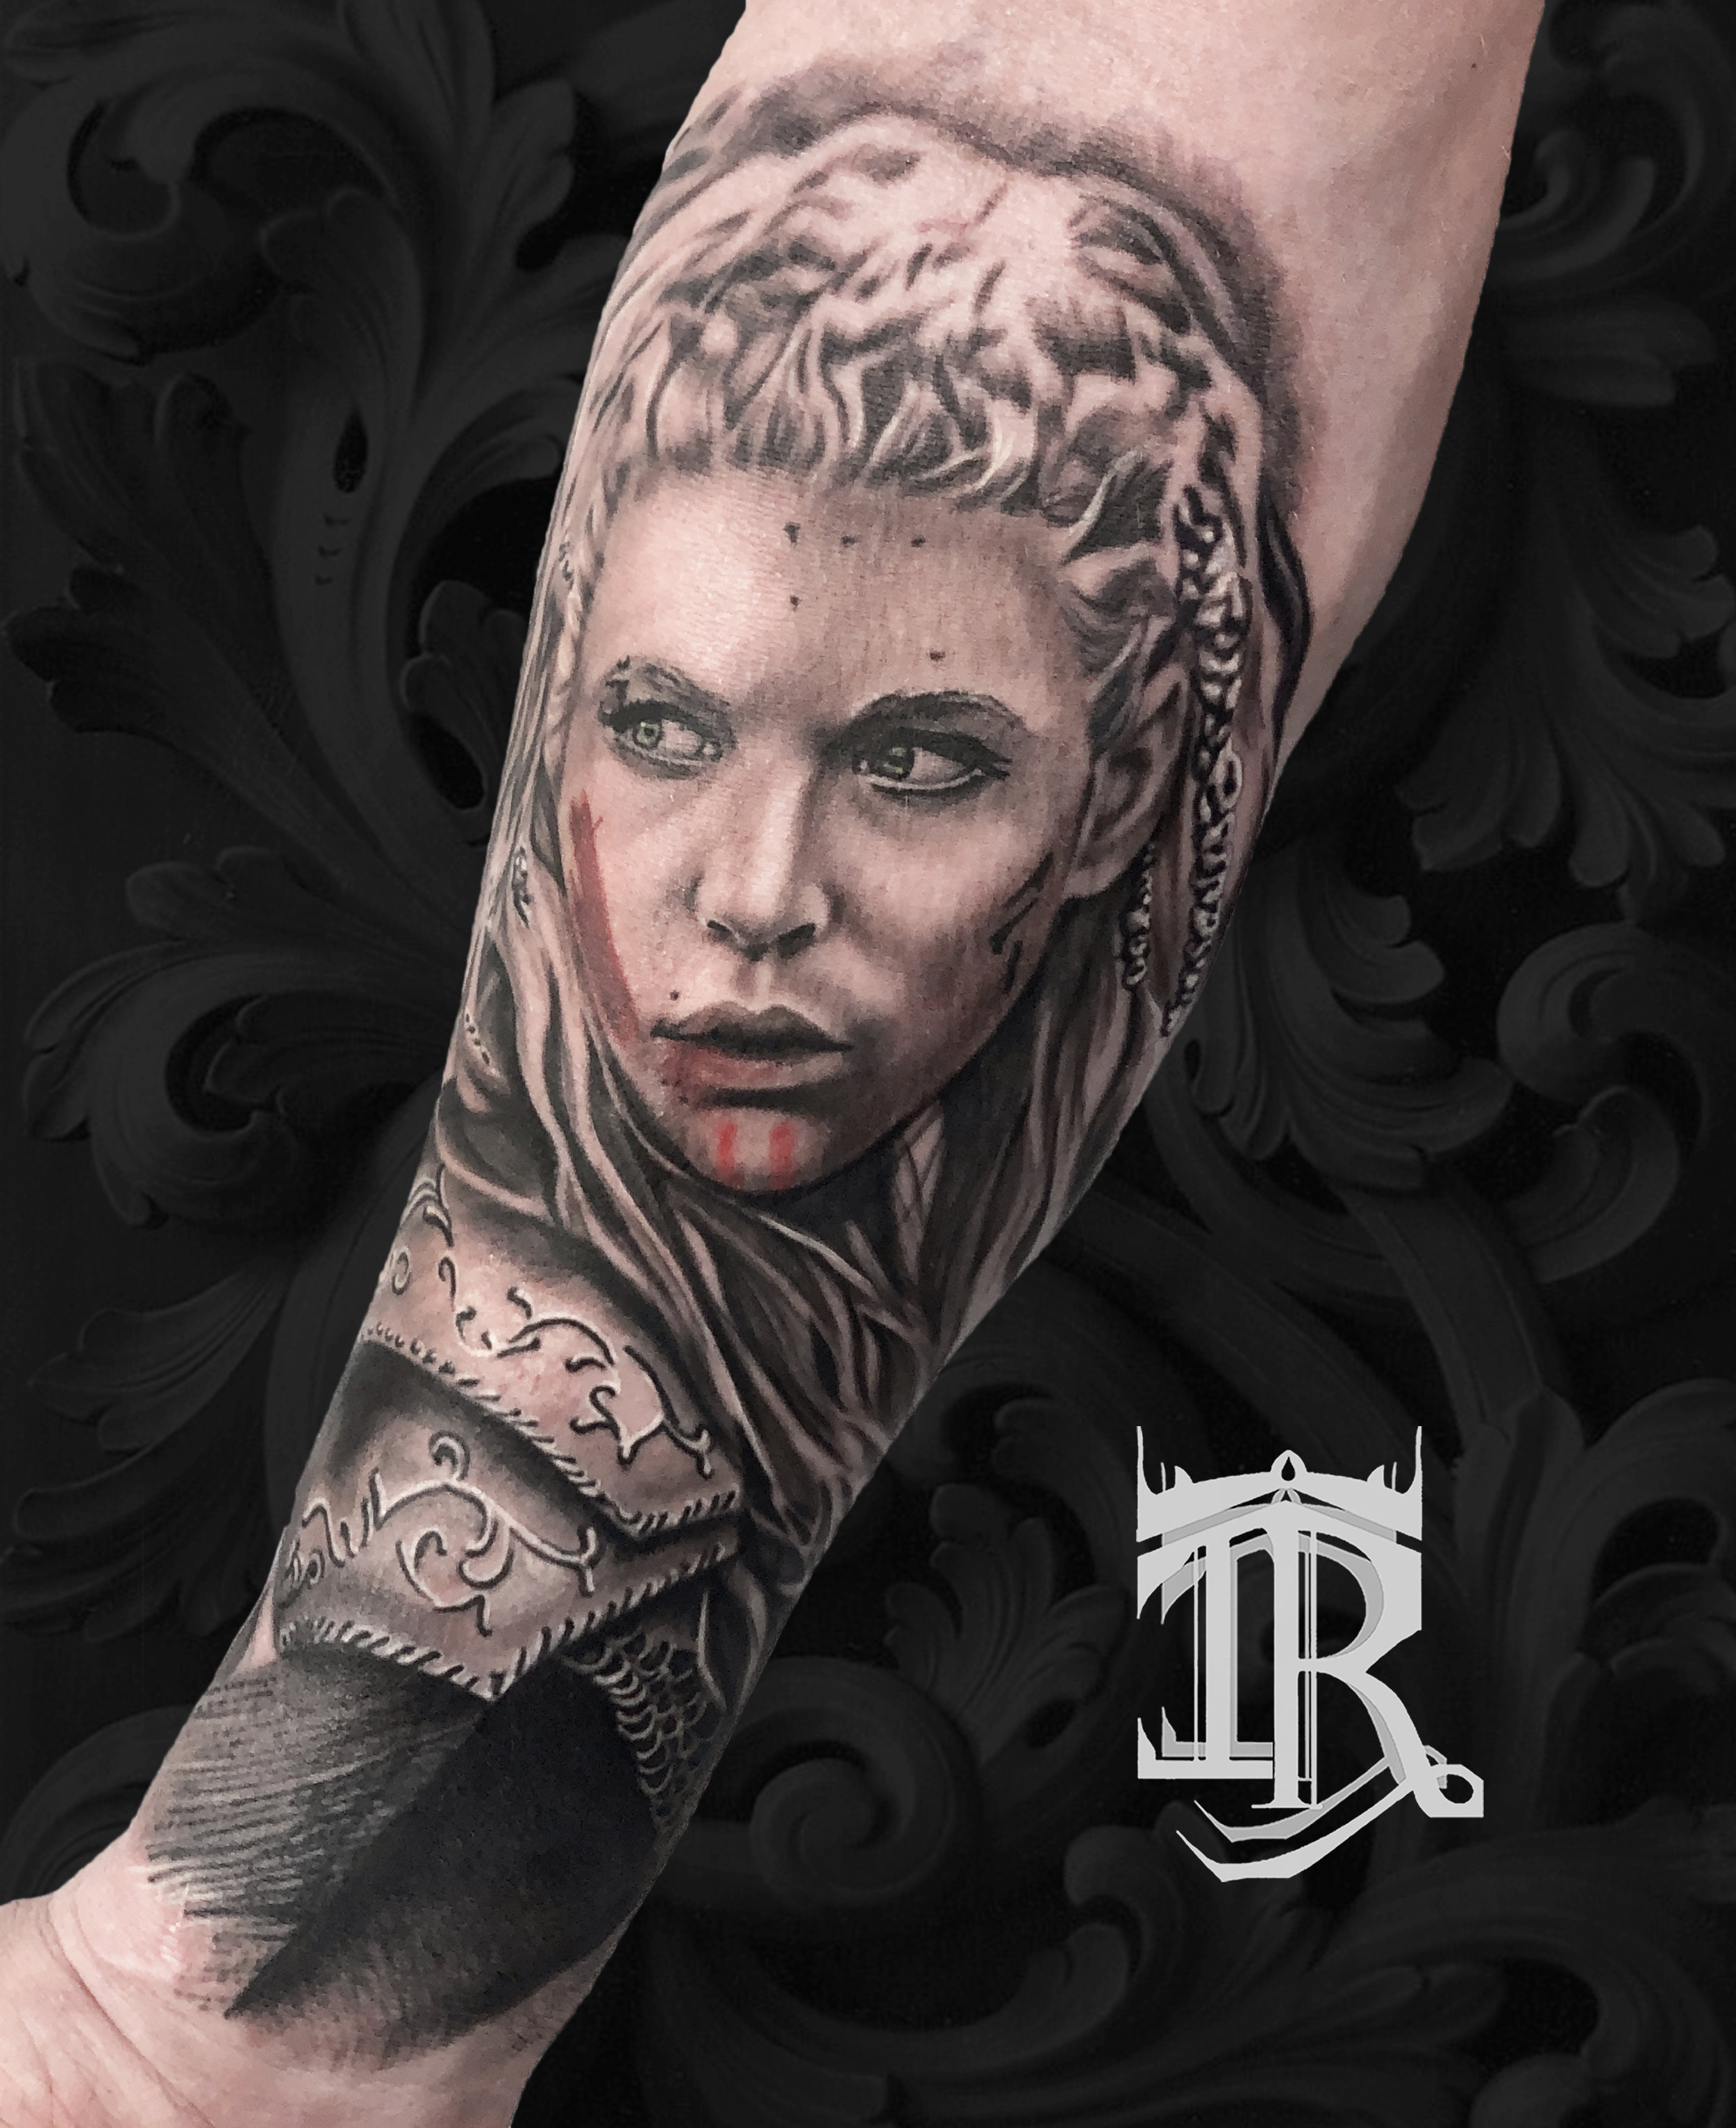 lagertha tattoo jeremy instagram INKROOM.jpg